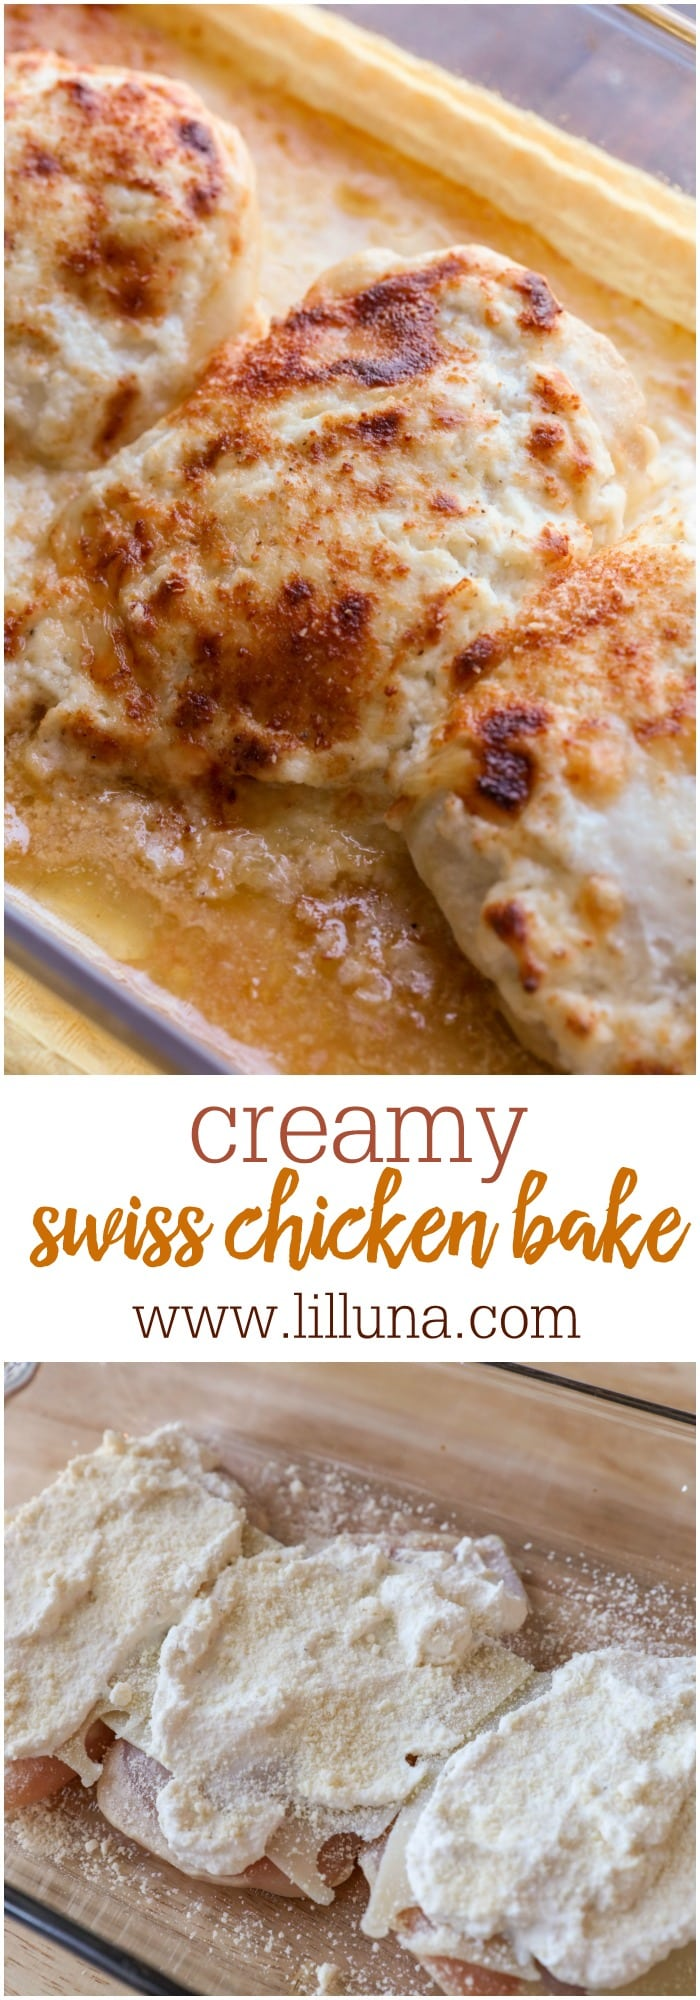 Delicious Creamy Swiss Chicken Bake - a simple and delicious dinner recipe that includes Swiss and Parmesan cheese.